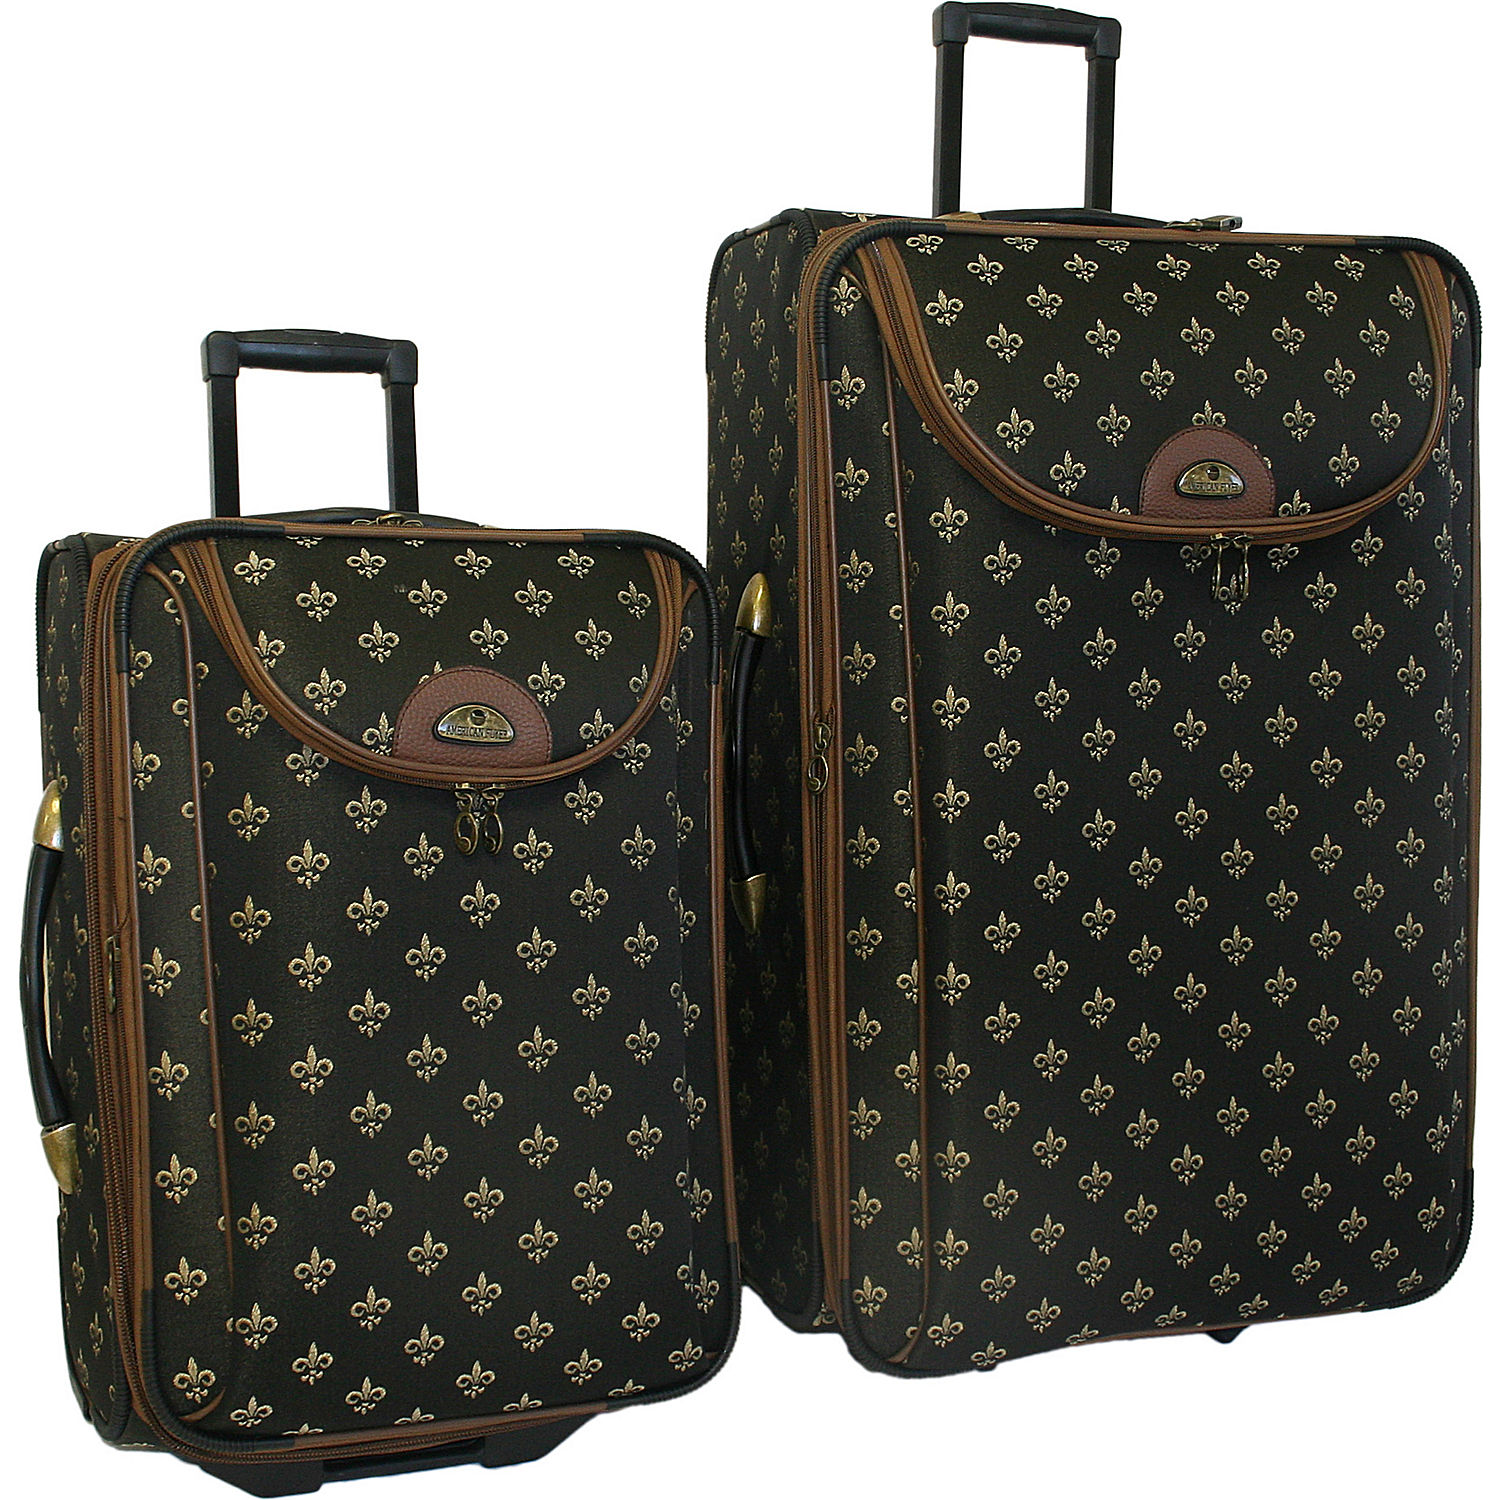 American Flyer Fleur De Lis 2 Piece Luggage Set Ebags Com